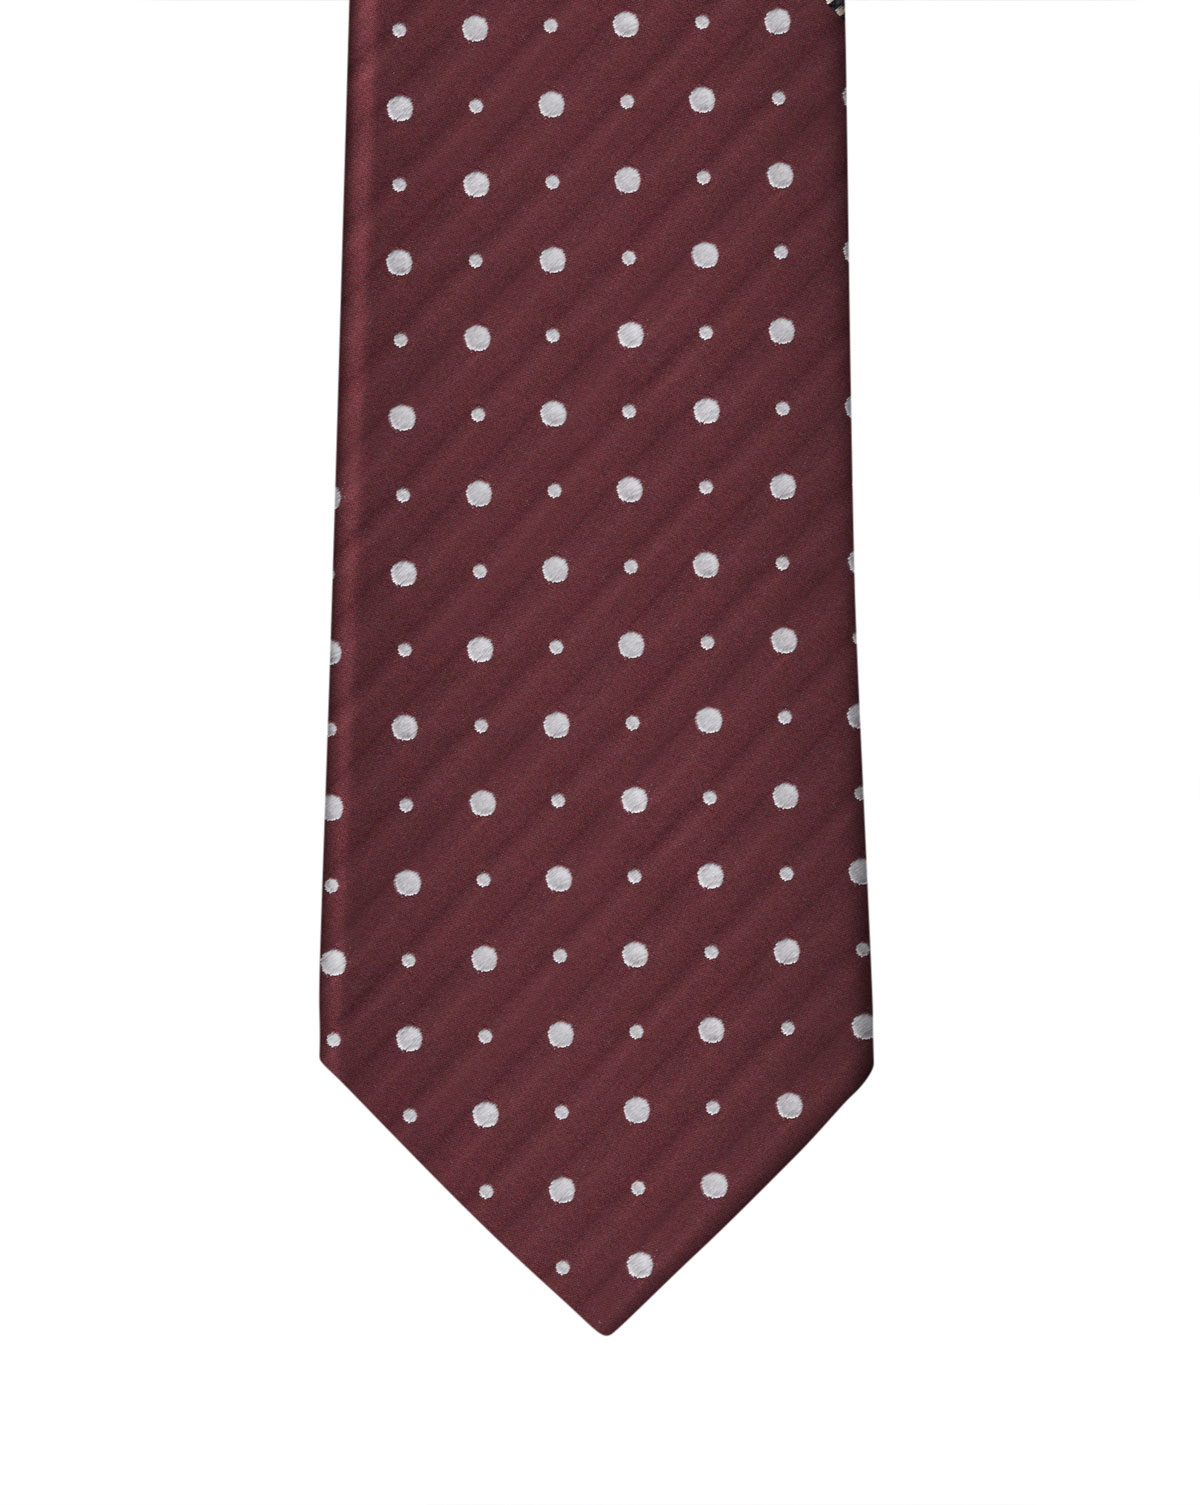 Burgundy & White Double Dot Necktie